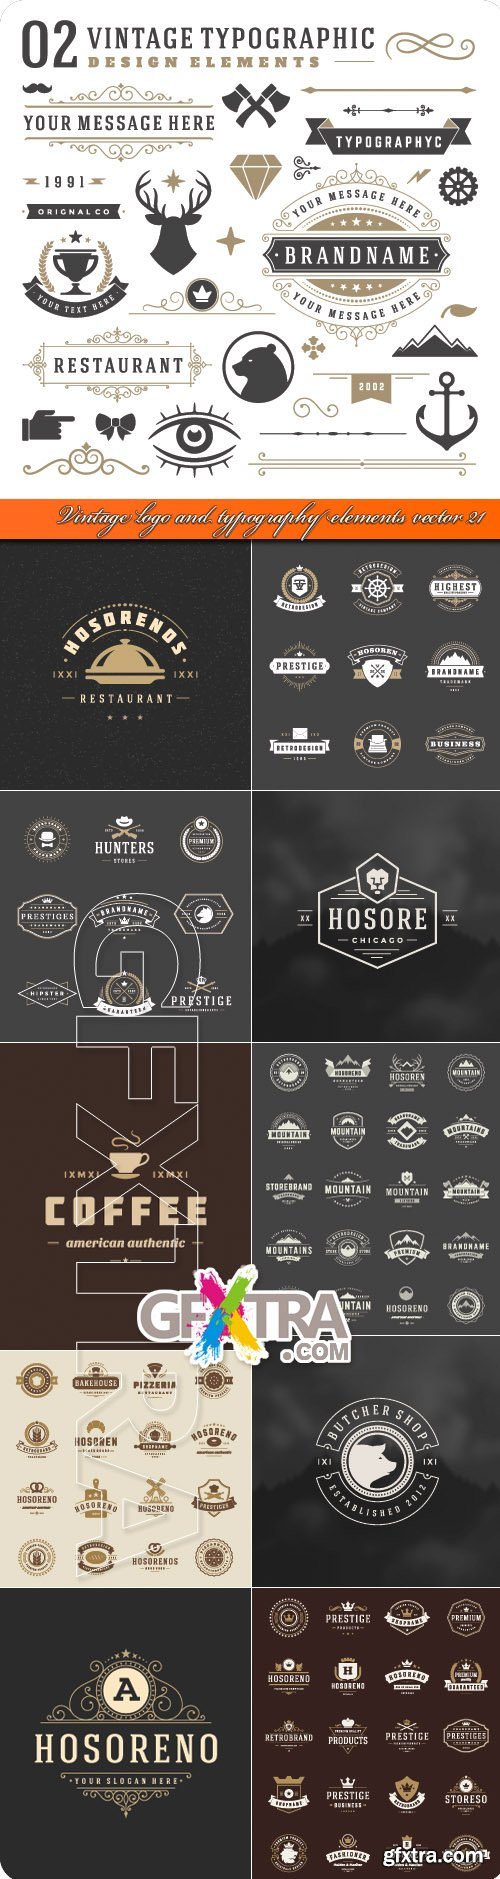 500x1879 Vintage, Logo, And, Typography, Elements, Vector, 21